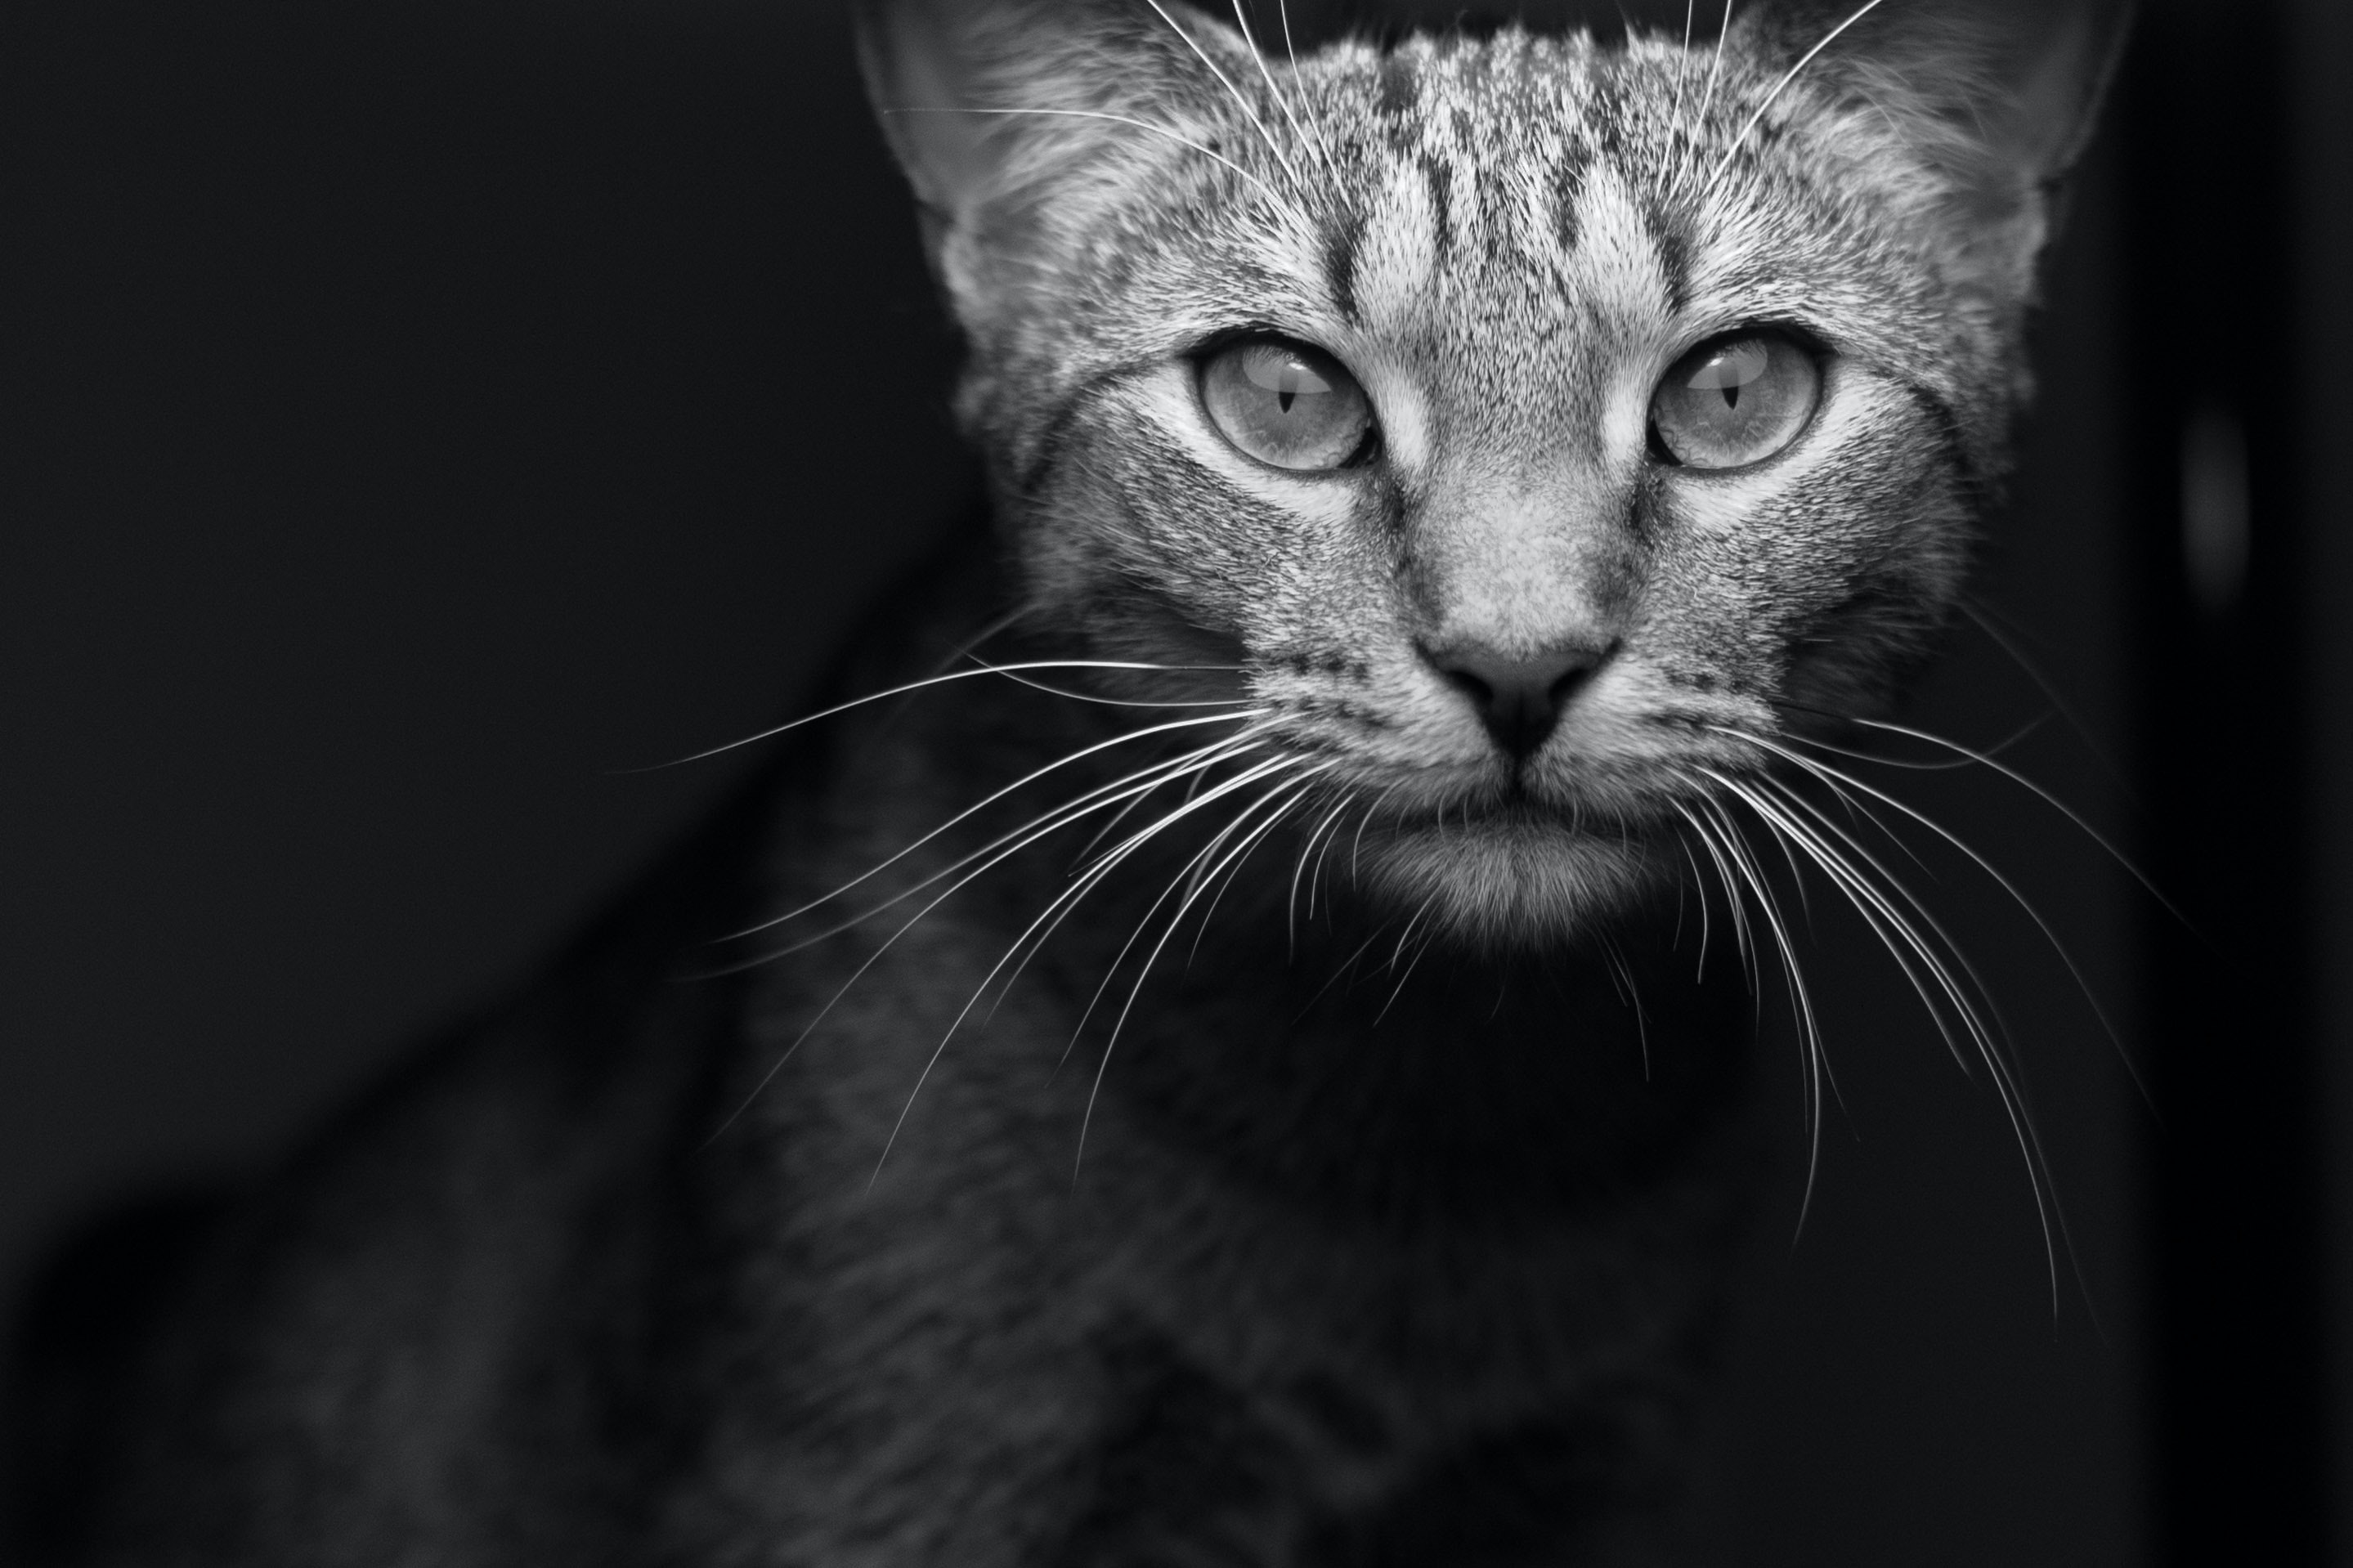 Black and white macro shot of domestic cat with illuminated face